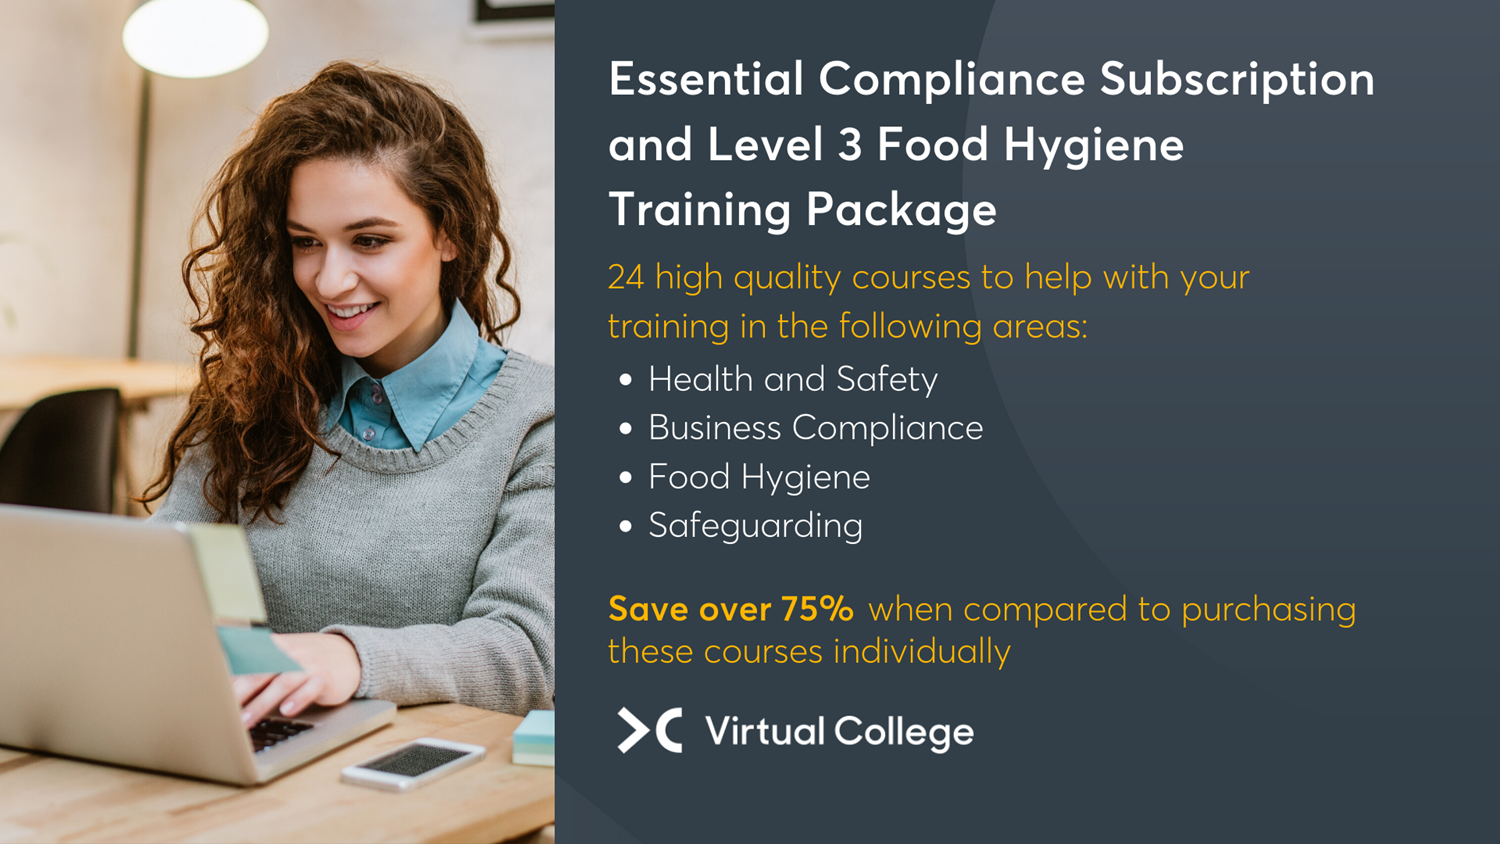 Essential_Compliance_Subscription_and_Level_3_Food_Hygiene_Training_Package